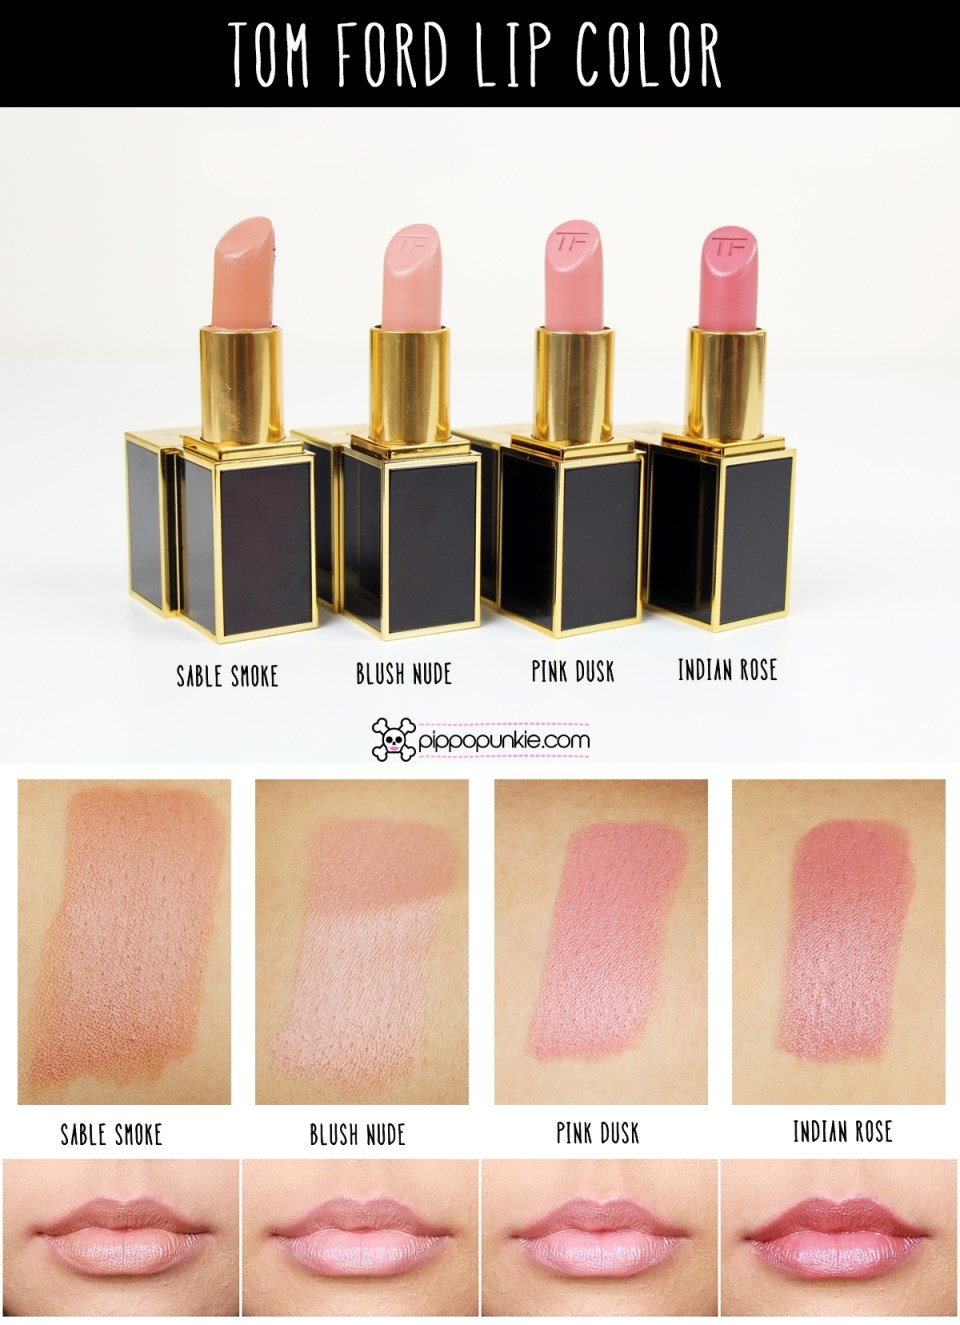 Tom Ford Lip Color Review & Swatches